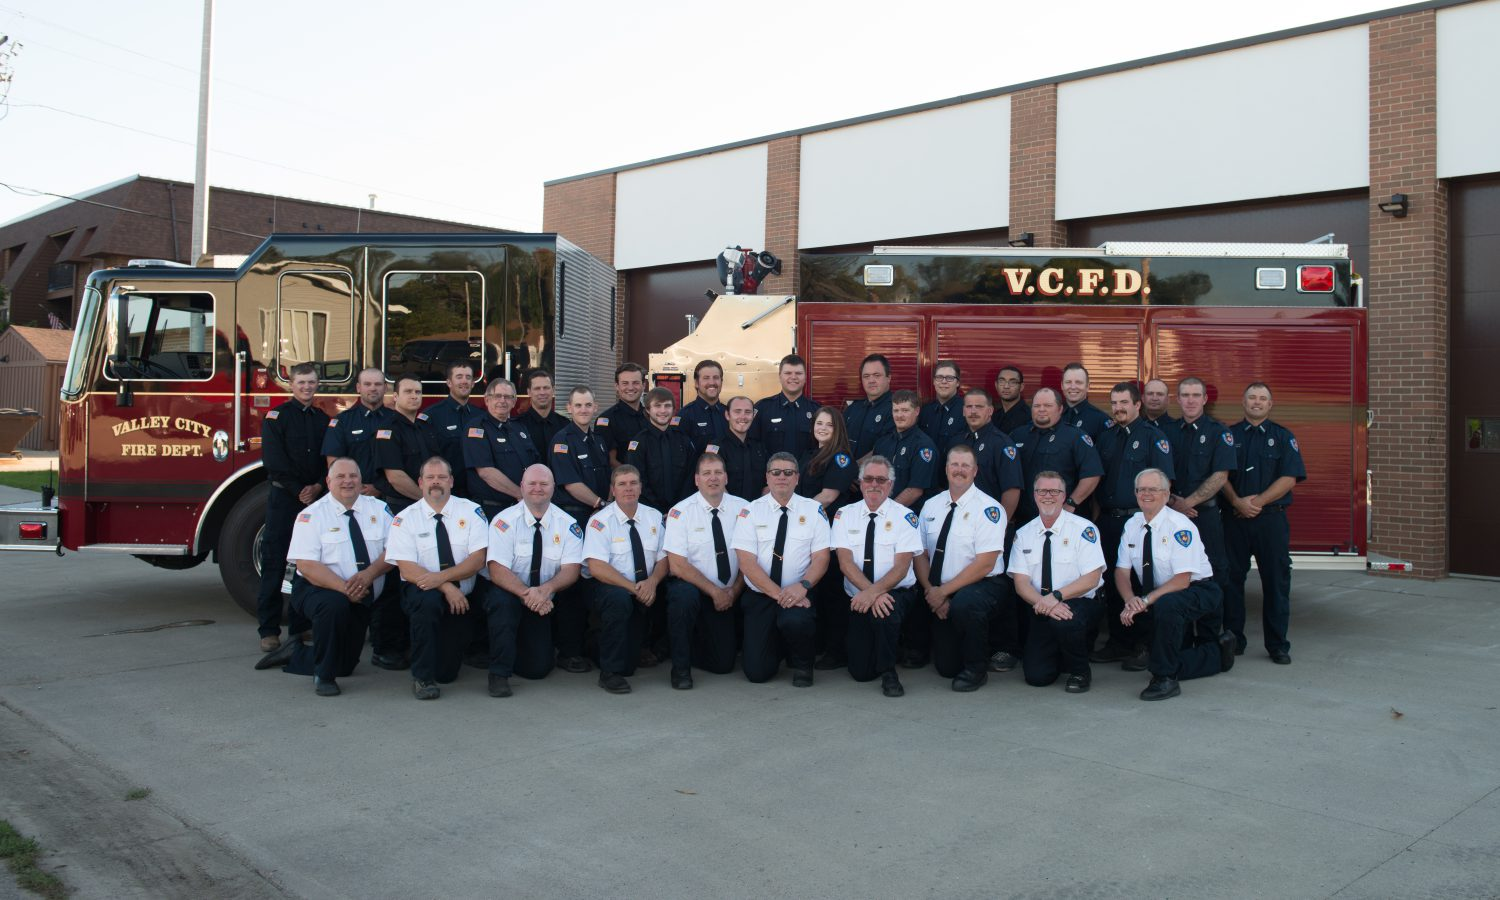 Valley City Fire Department 2019 Members in front of a red fire truck